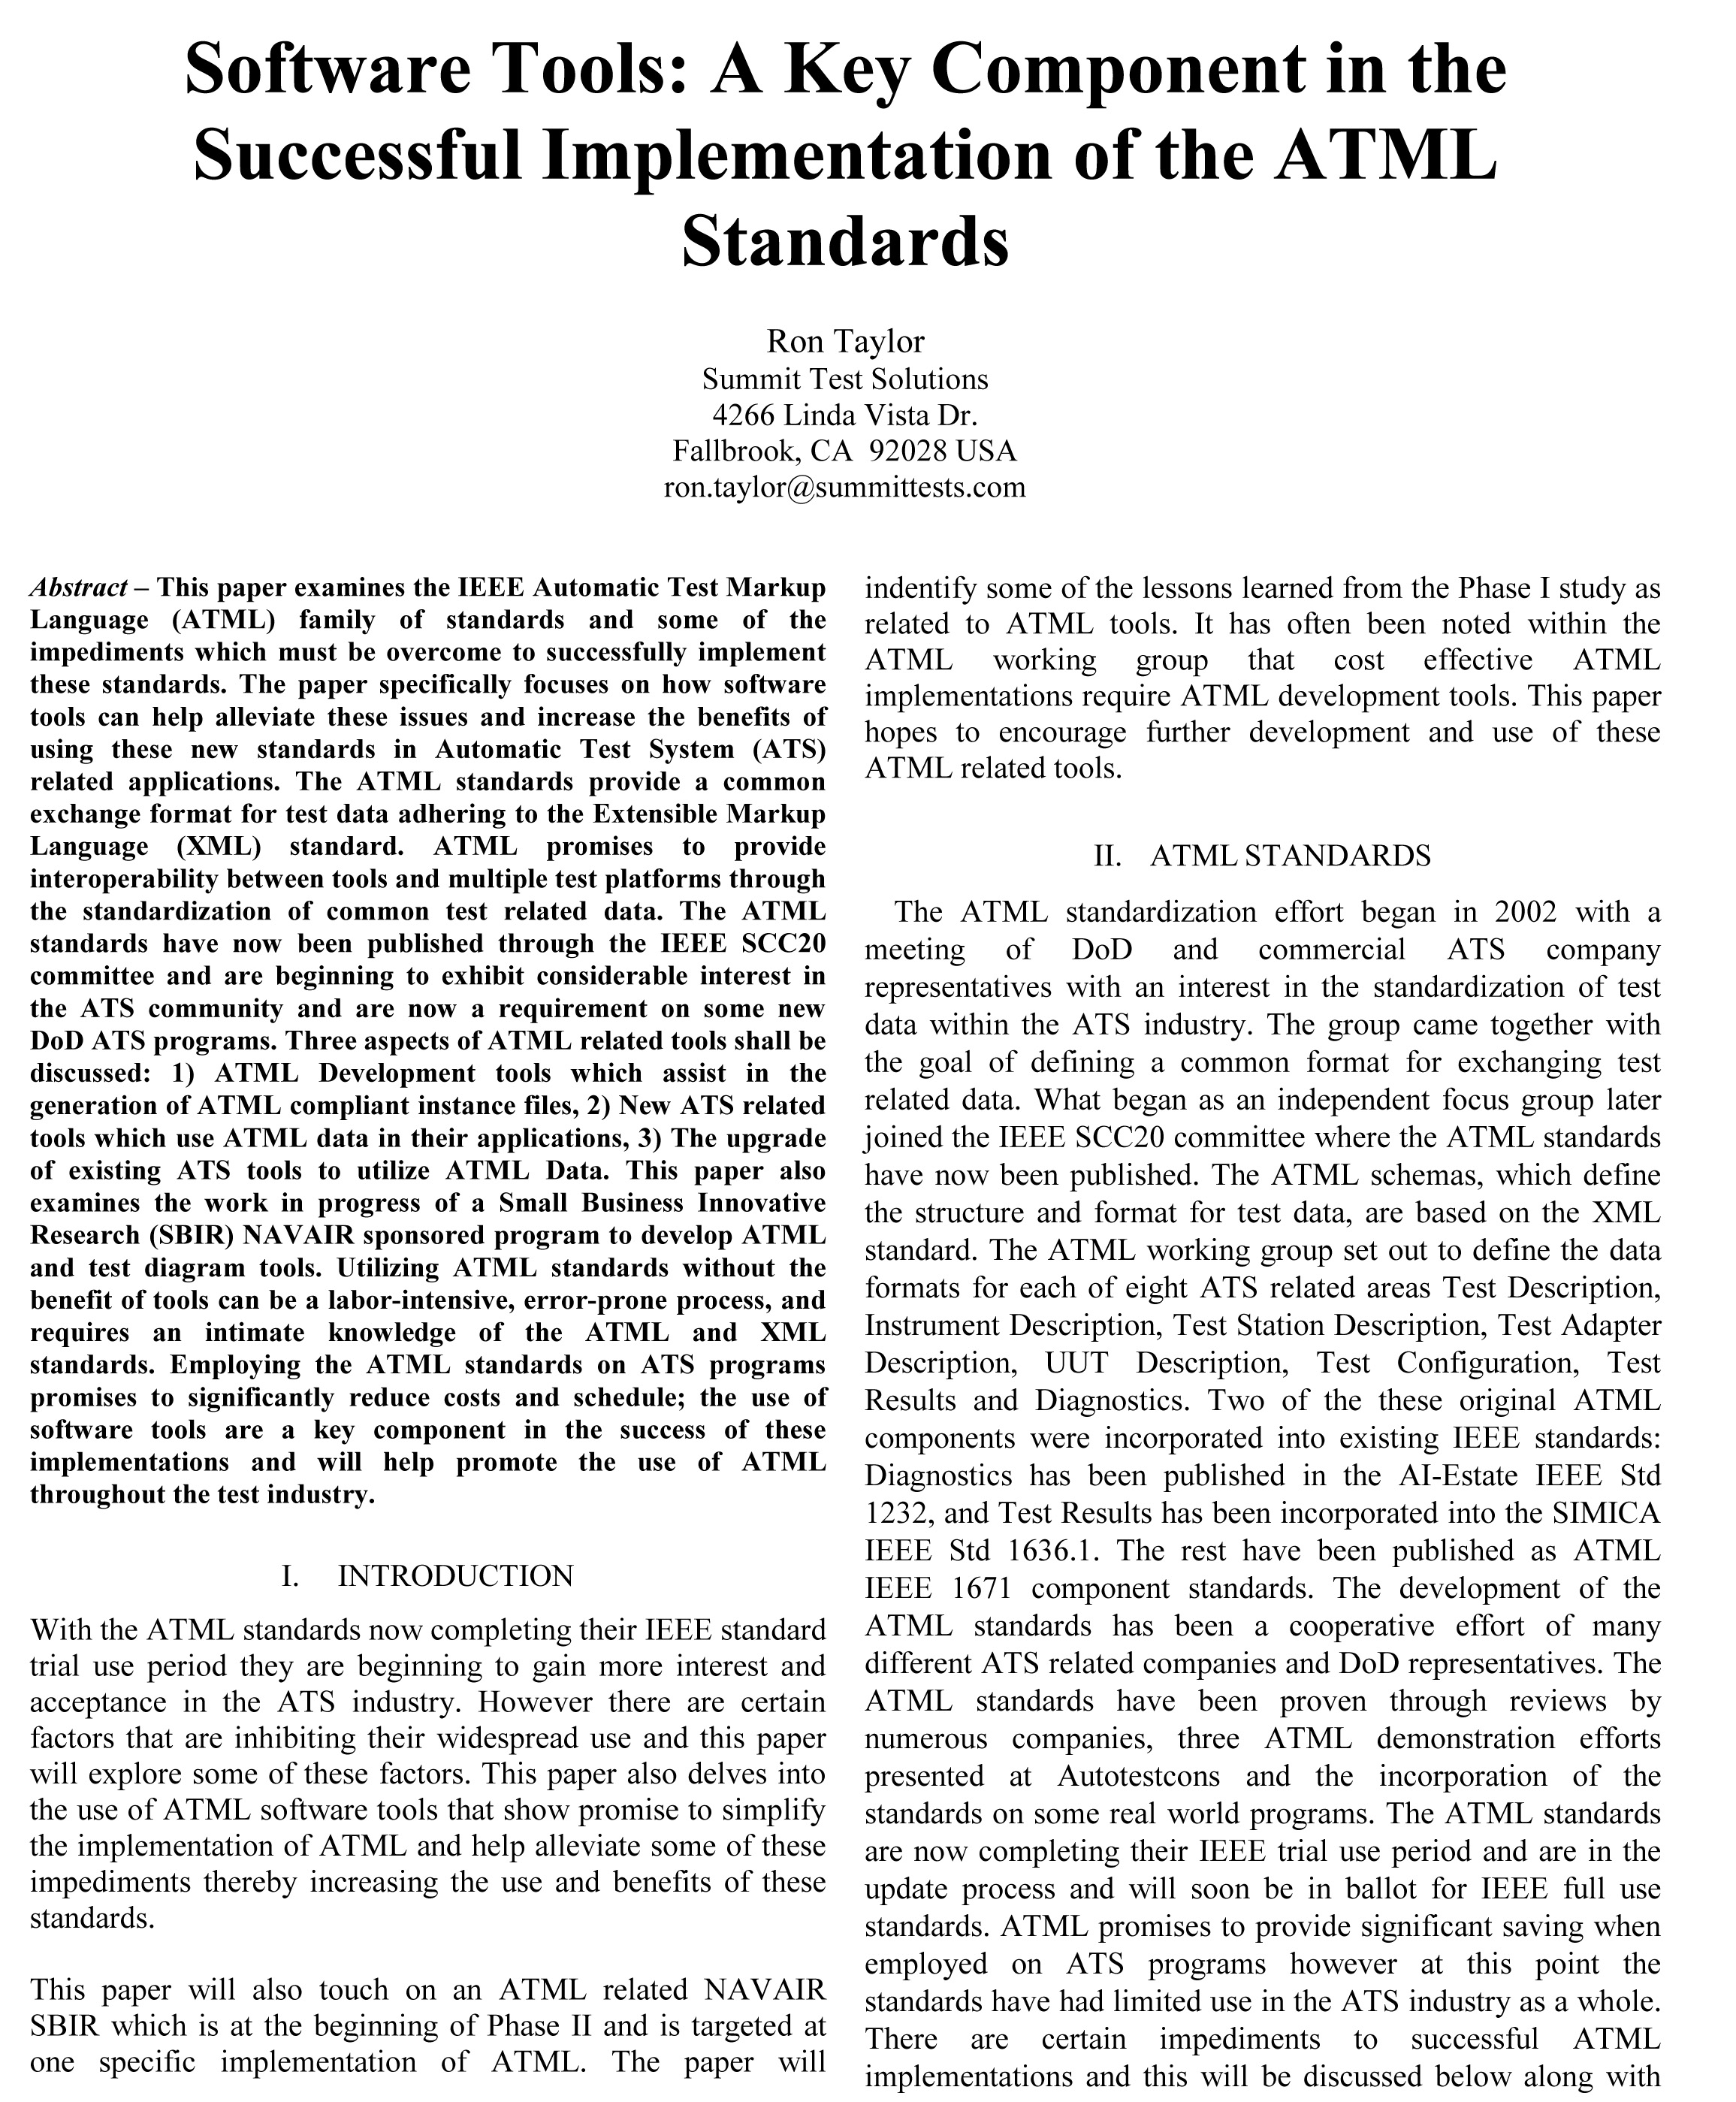 technical education essay paper This essay reviews stem initiatives and curriculums that support integration of science, technology mathematics and engineering in career and technical education (cte) curriculum a variety of open course software that can be directed to address different aspects of enriching stem activities in cte curricular subjects.